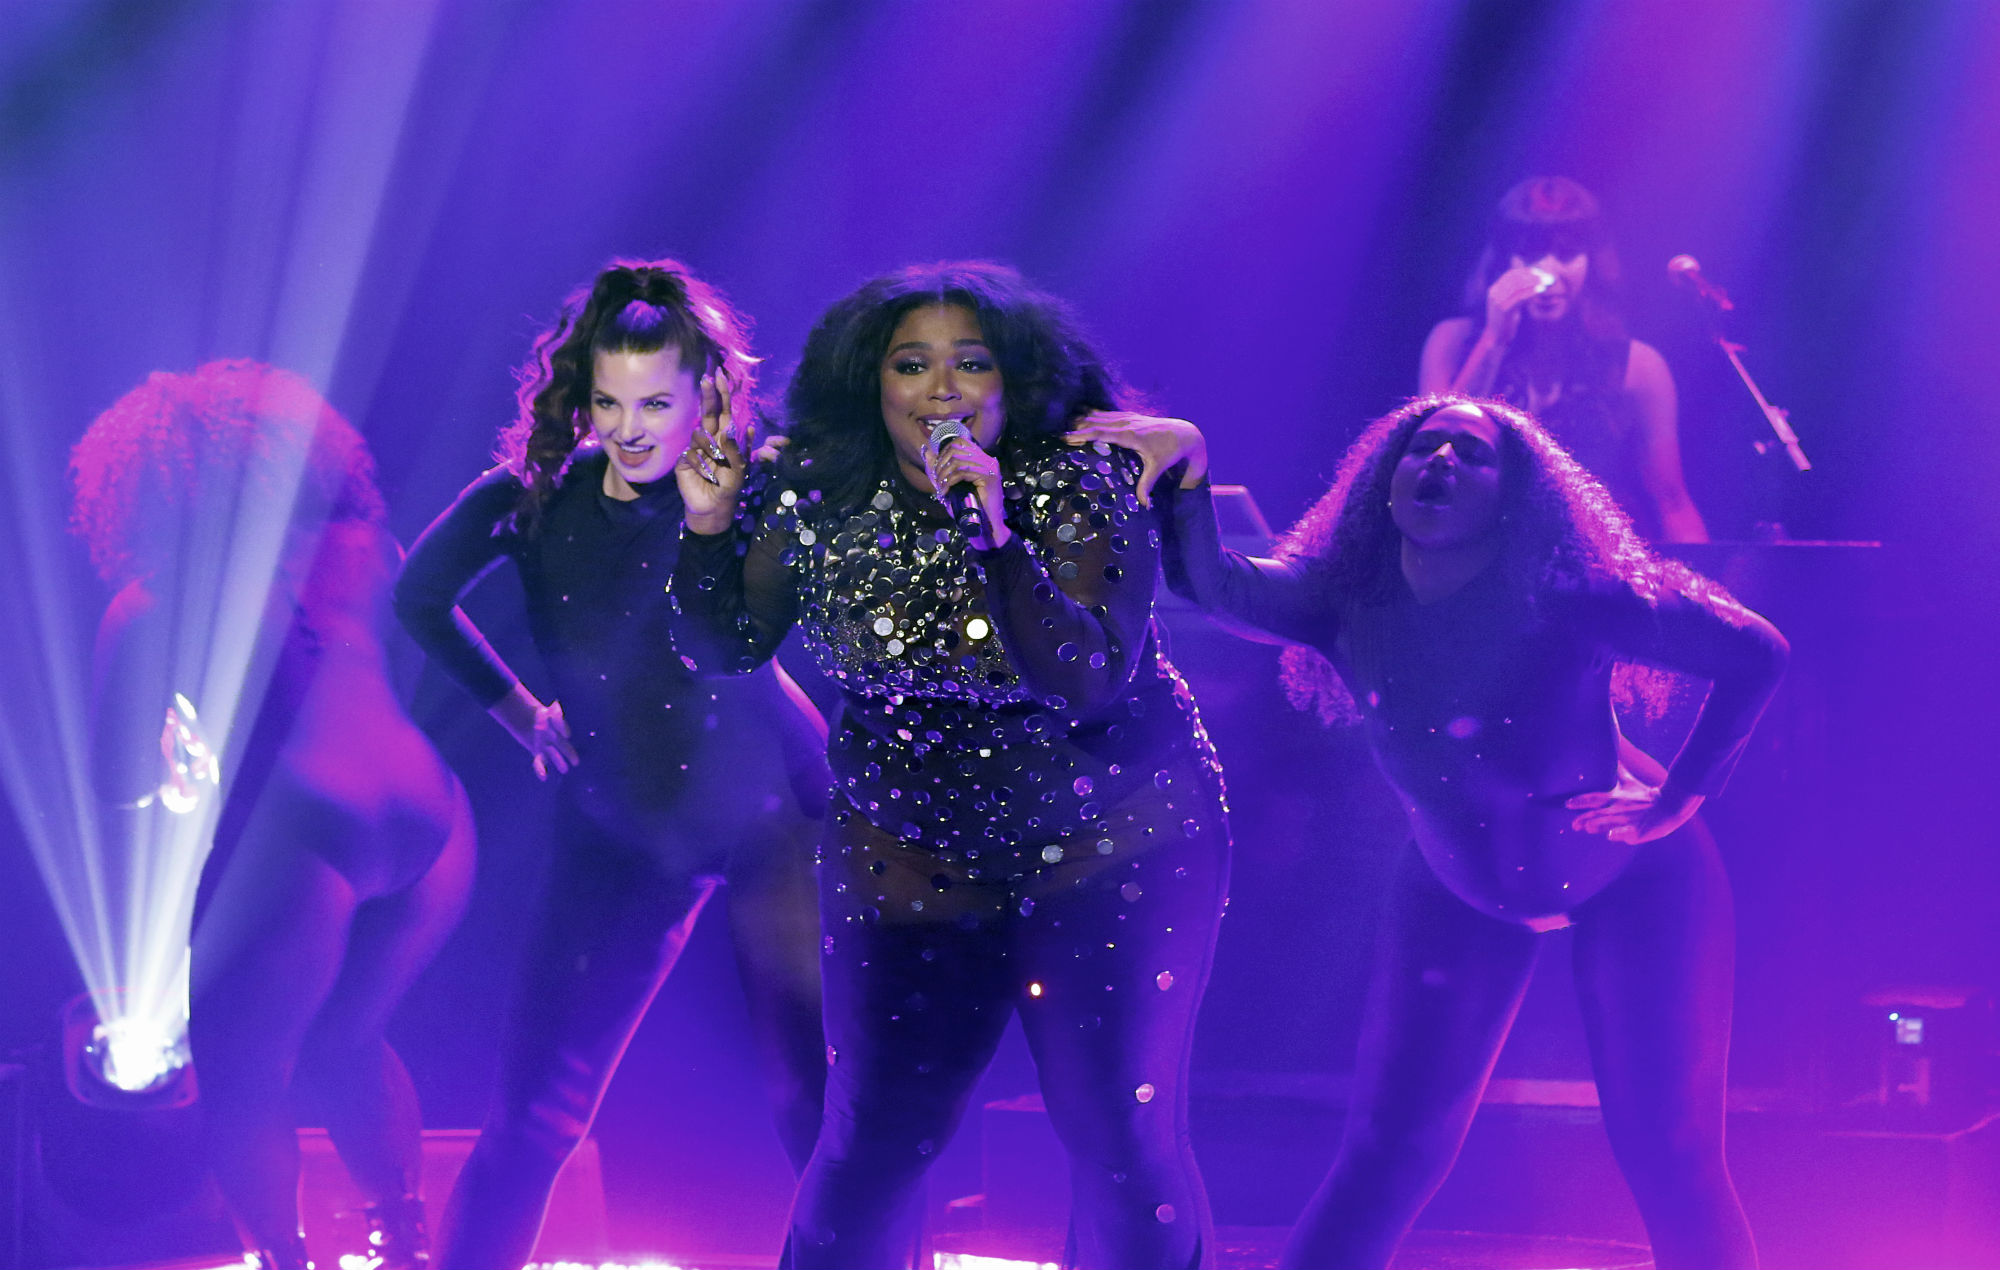 Lizzo to appear on 'Saturday Night Live' with Eddie Murphy